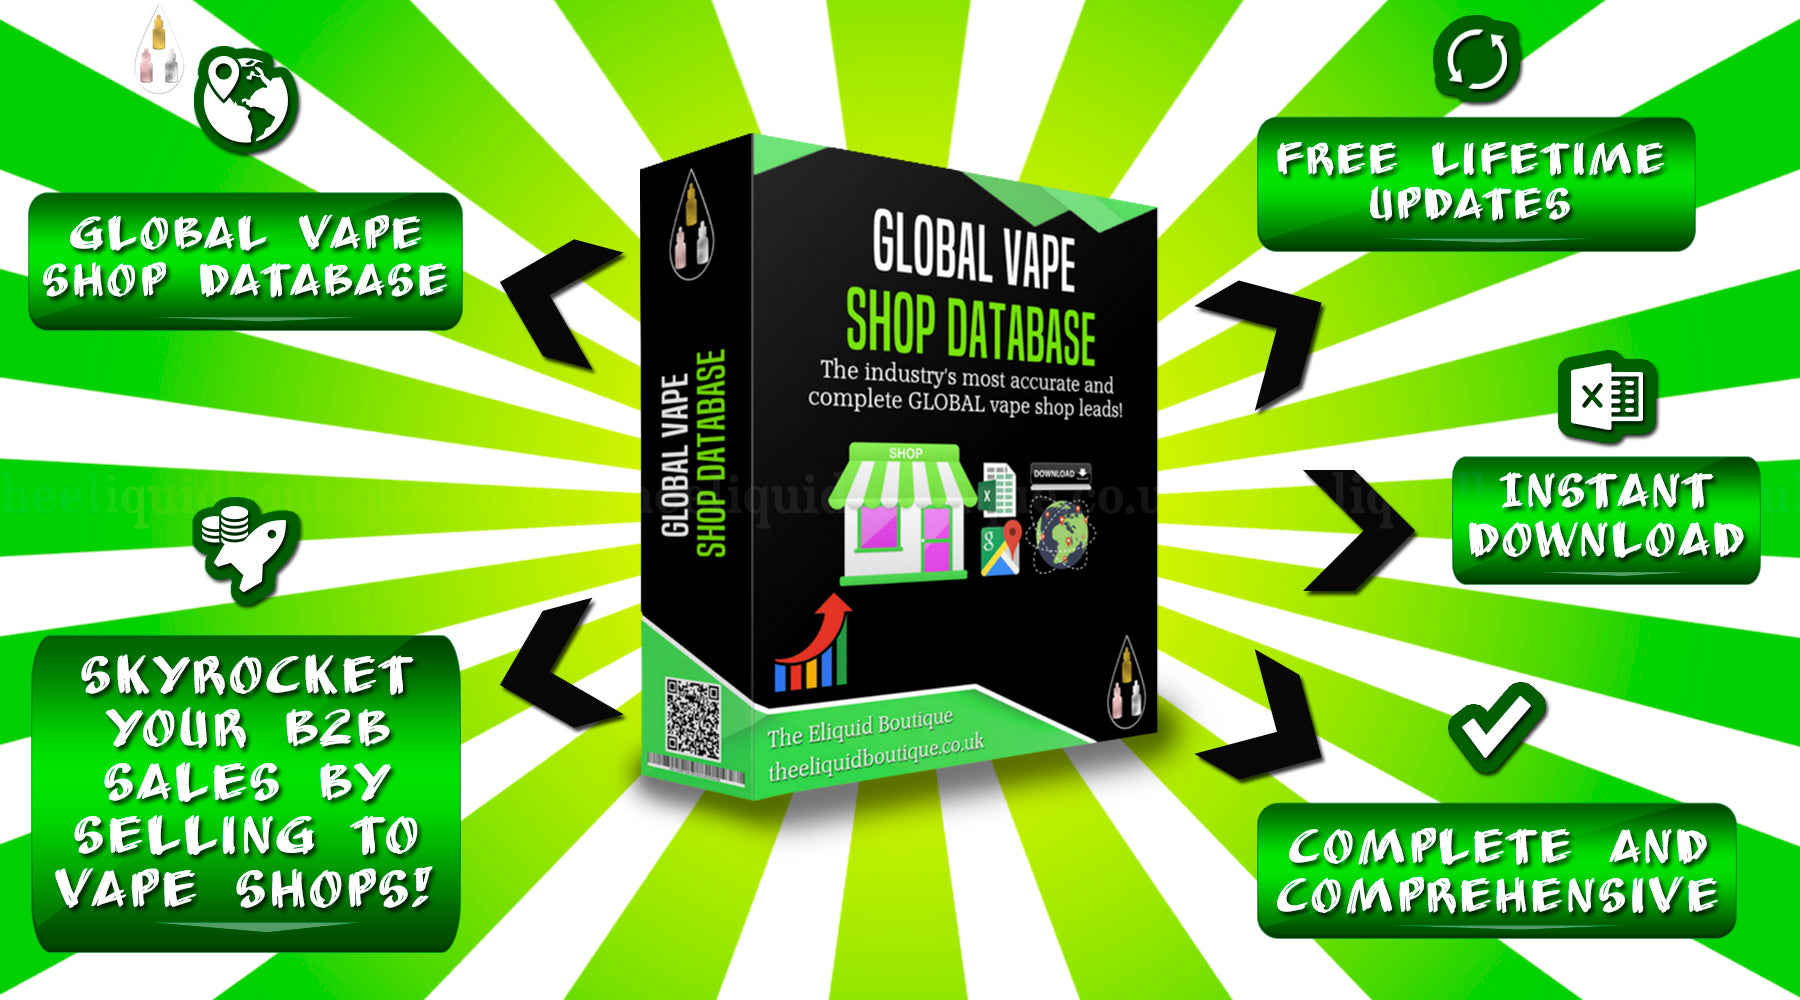 global vape shop database